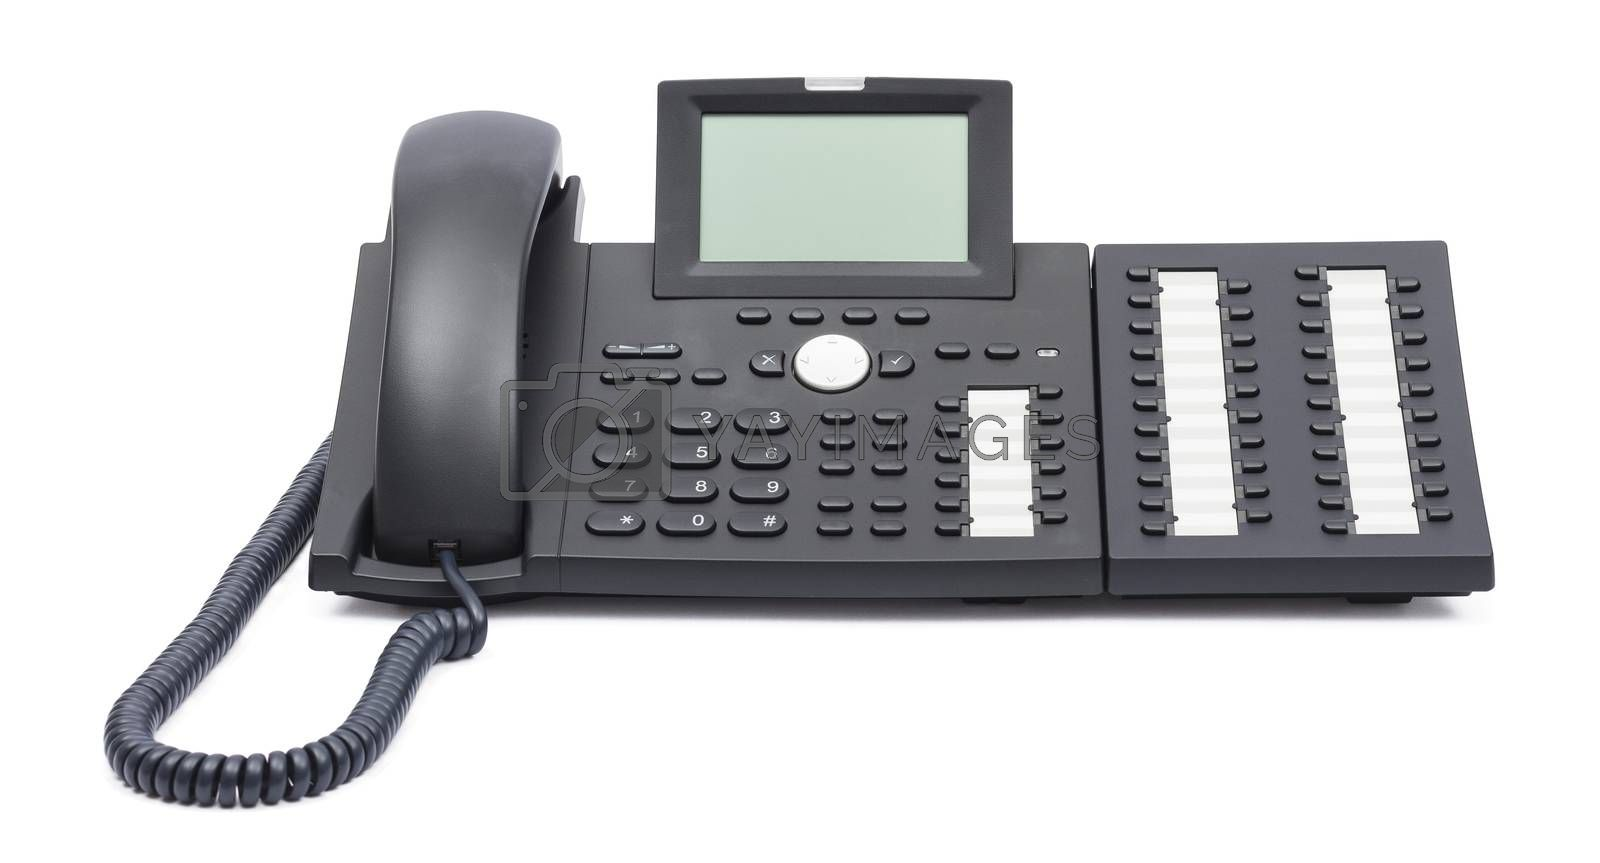 modern voip phone isolated on white background. single object